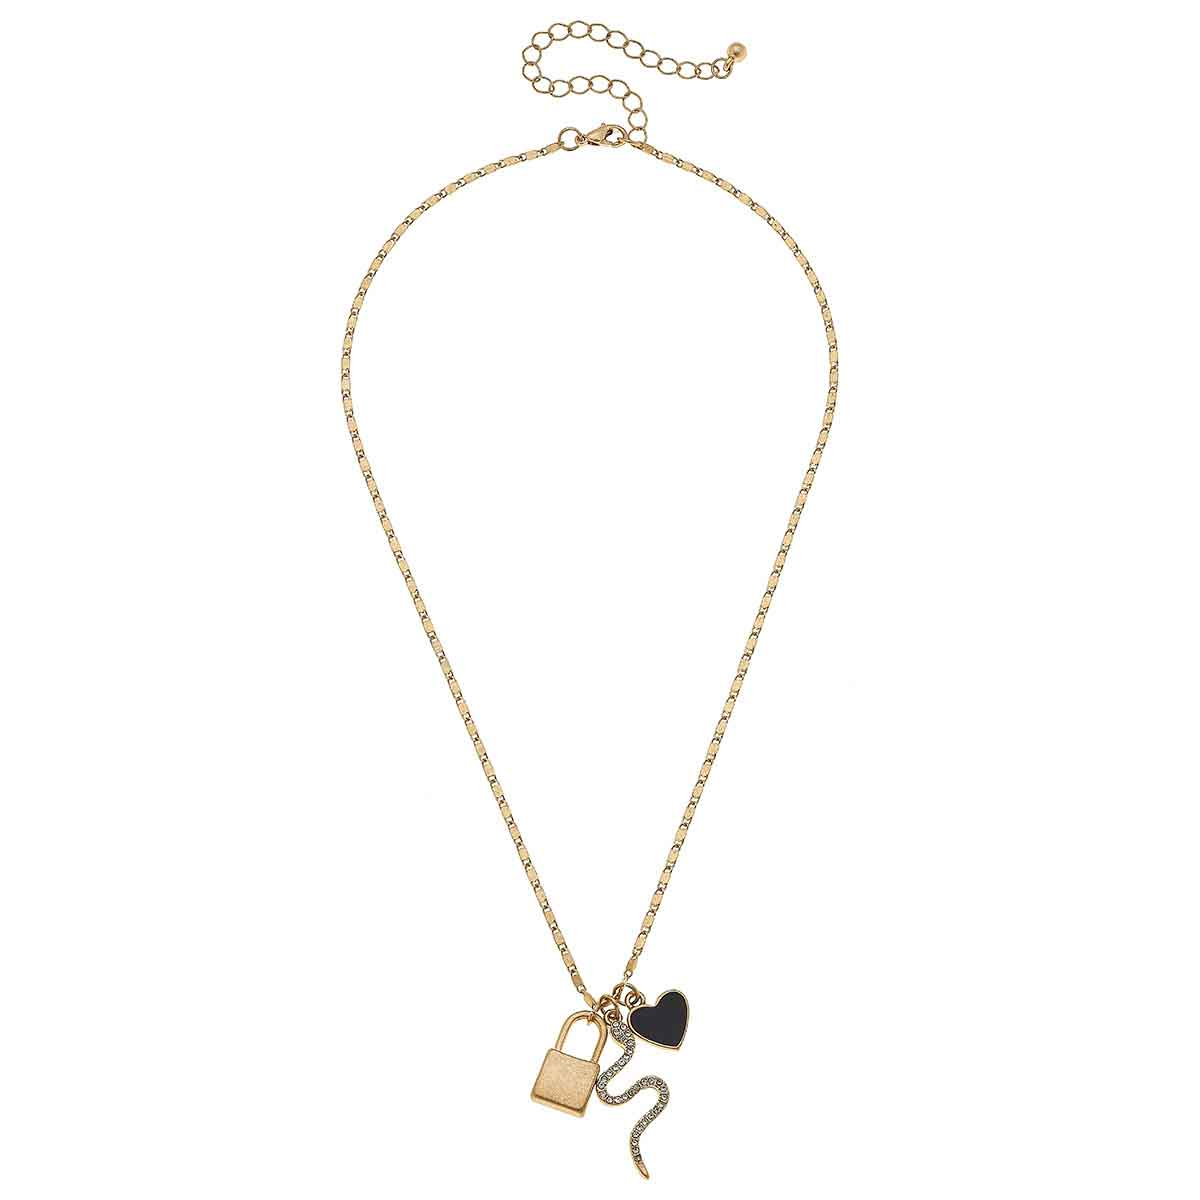 Brinkley Charm Necklace in Worn Gold